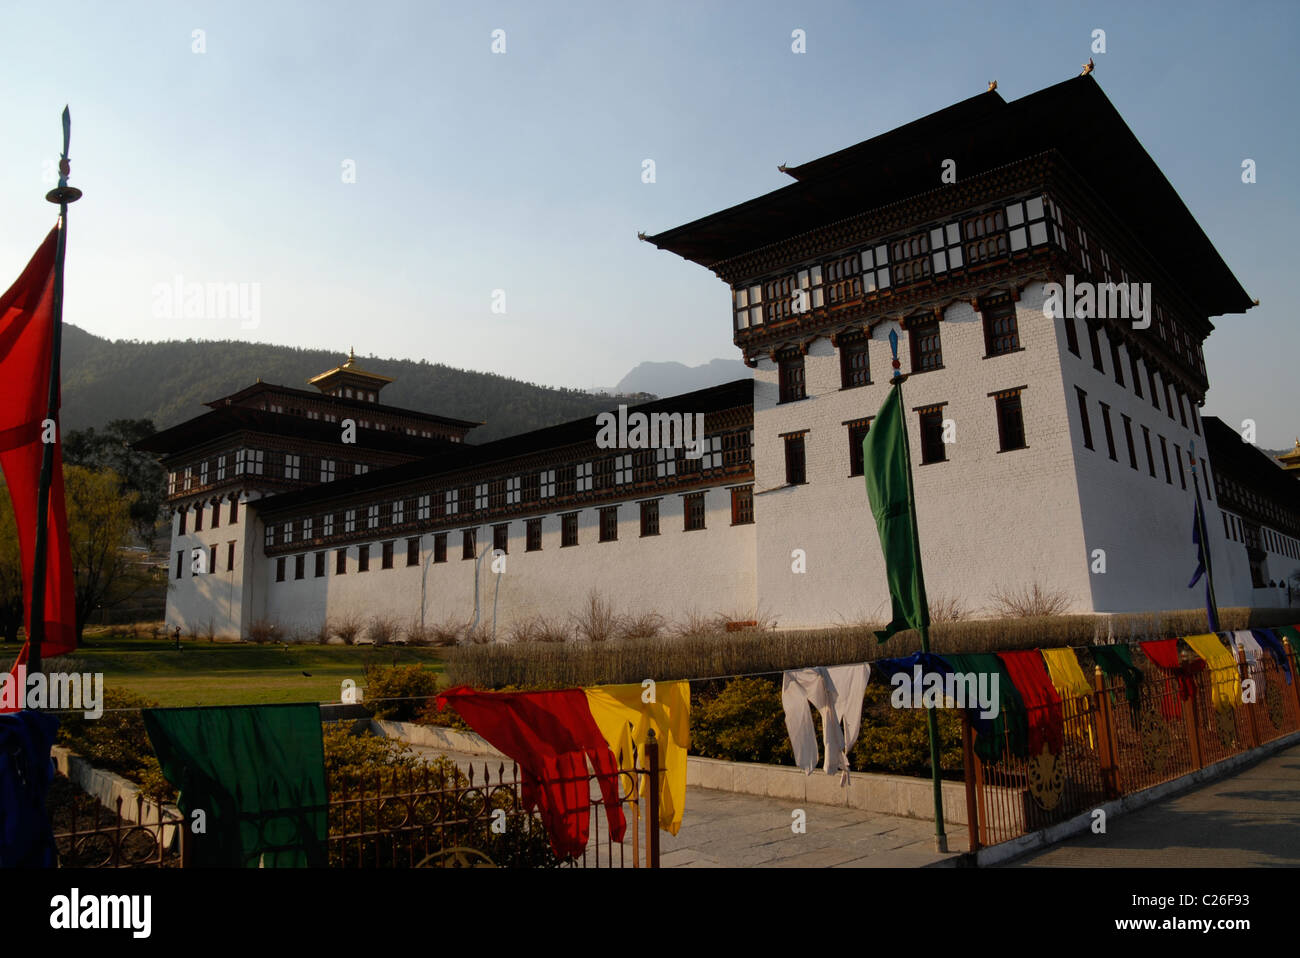 Outside Trashi Chhoe Dzong, Thimphu, Bhutan Stock Photo